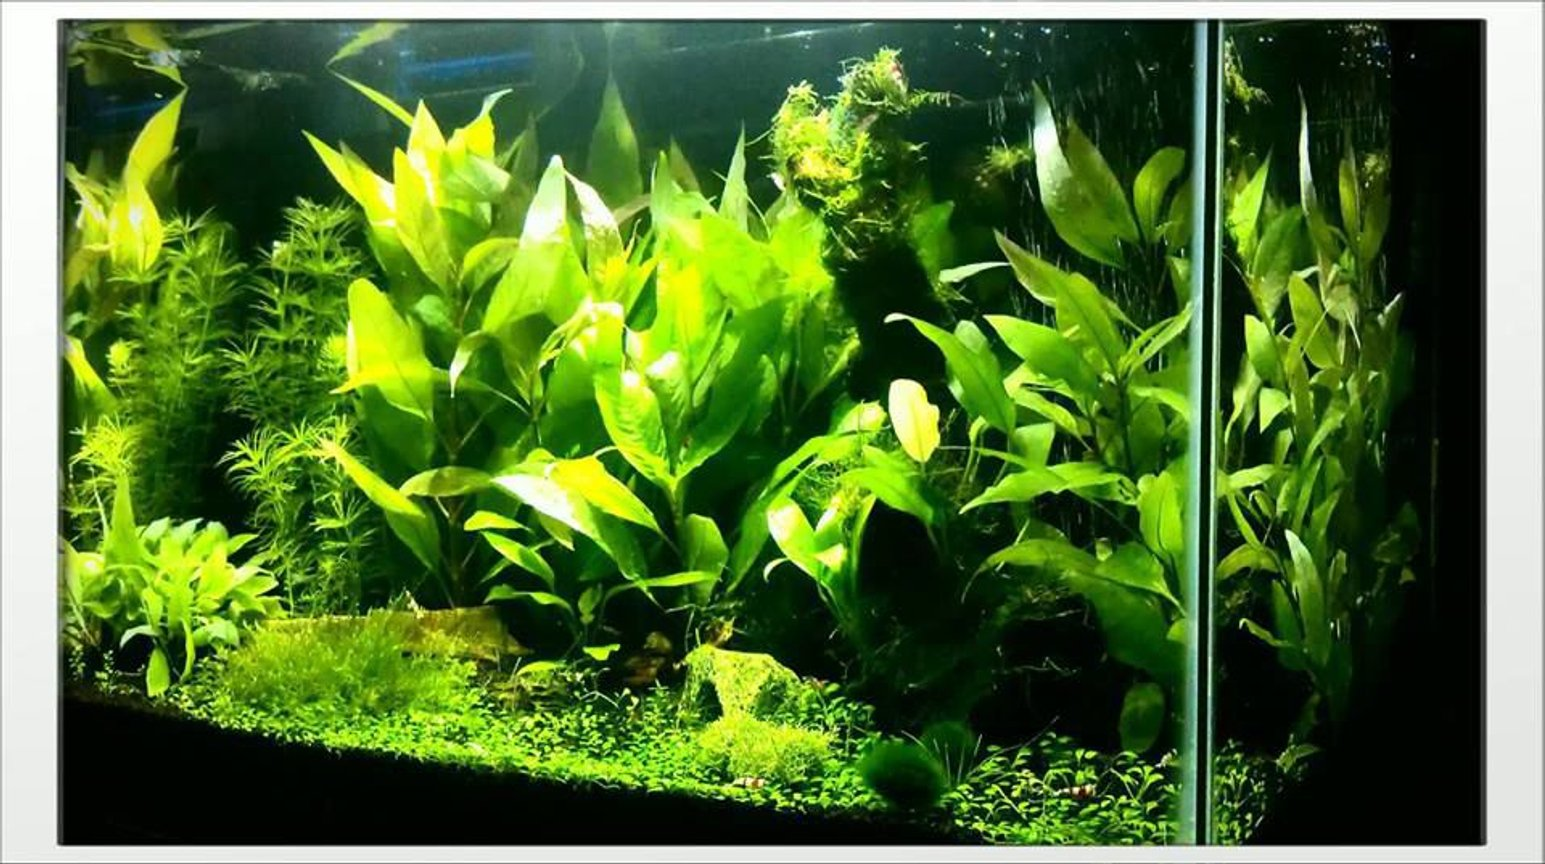 40 gallons planted tank (mostly live plants and fish) - 20G Freshwater. Temple, Anubias, Glossostigma, Flame Moss, X-Mas Moss, Java Moss. Double Bright LED, Fluval Shrimp Substrate. Crystal Red Shrimp, Crystal Black Shrimp, Blue Rili Shrimp, Otto Cat.